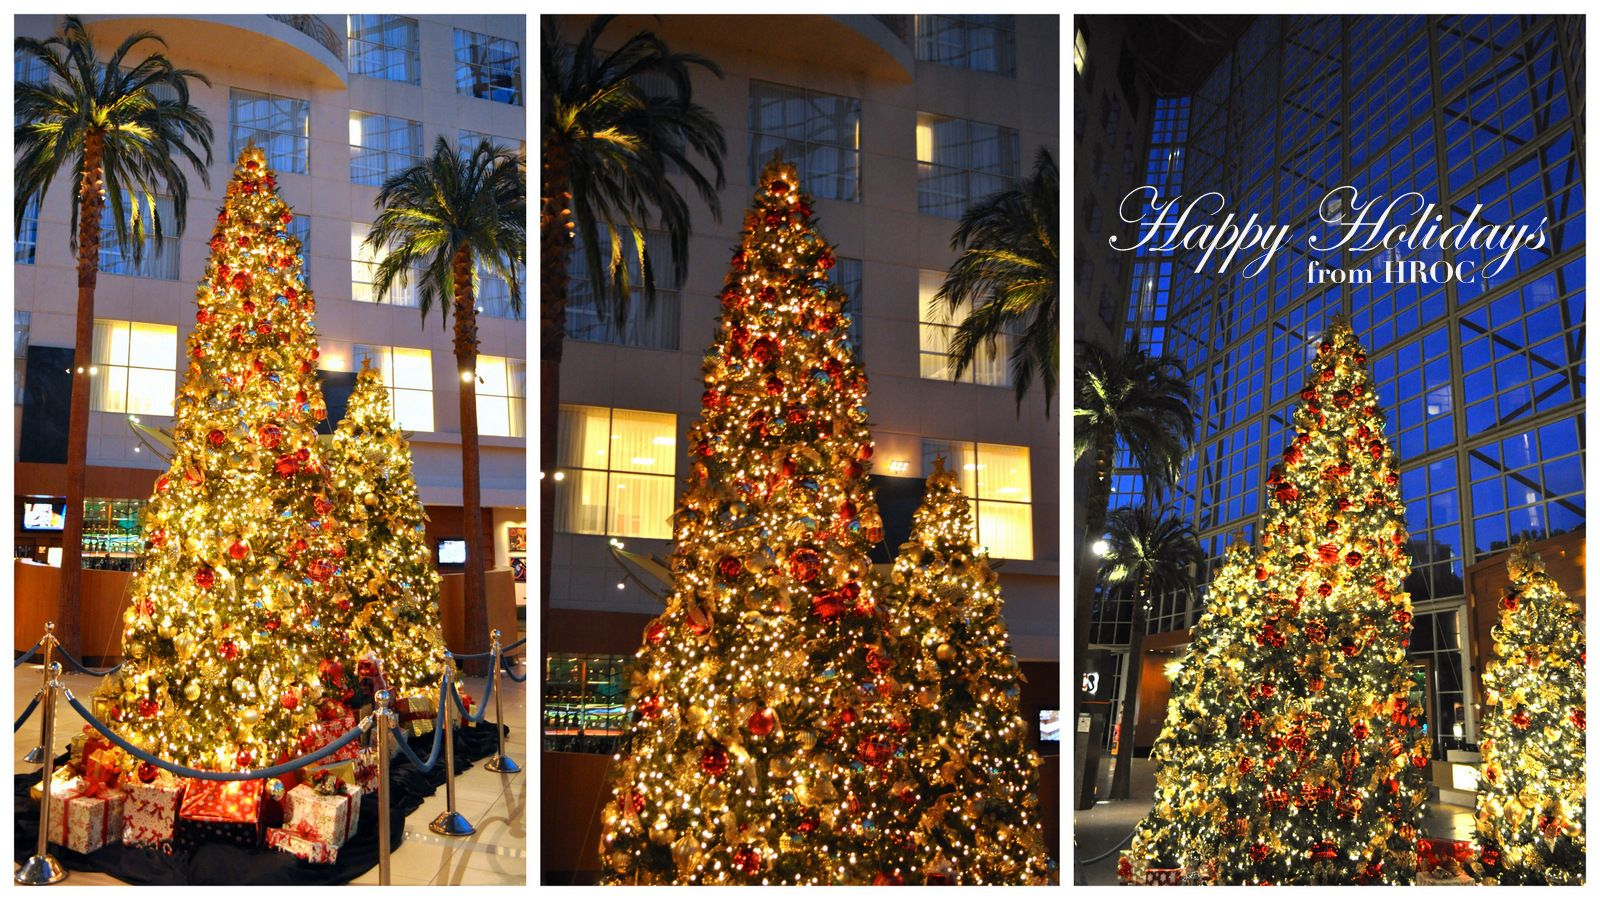 The lobby at Christmas Time.